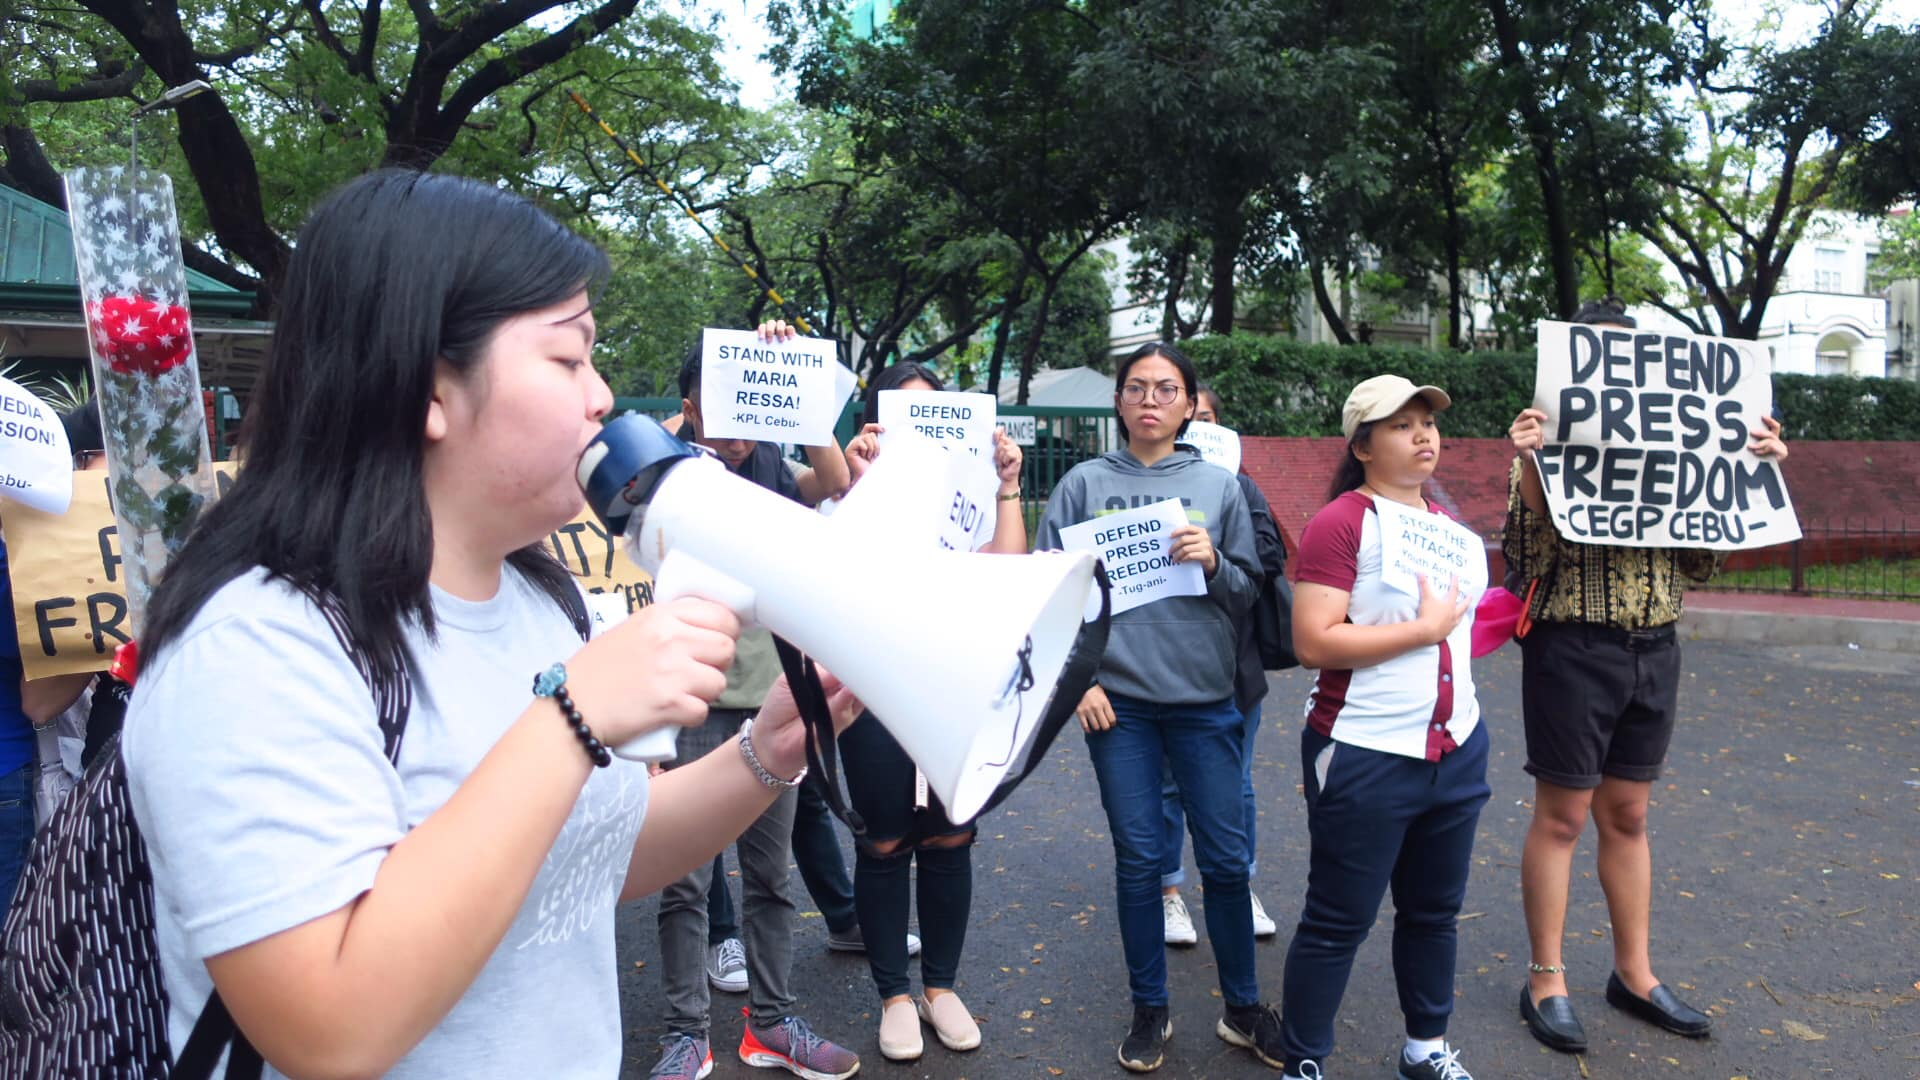 STOP THE ATTACKS. CEGP Cebu holds a protest action at the UP Cebu entrance gate to urge people to stand with Maria Ressa on February 14, 2019. Photo from CEGP Cebu